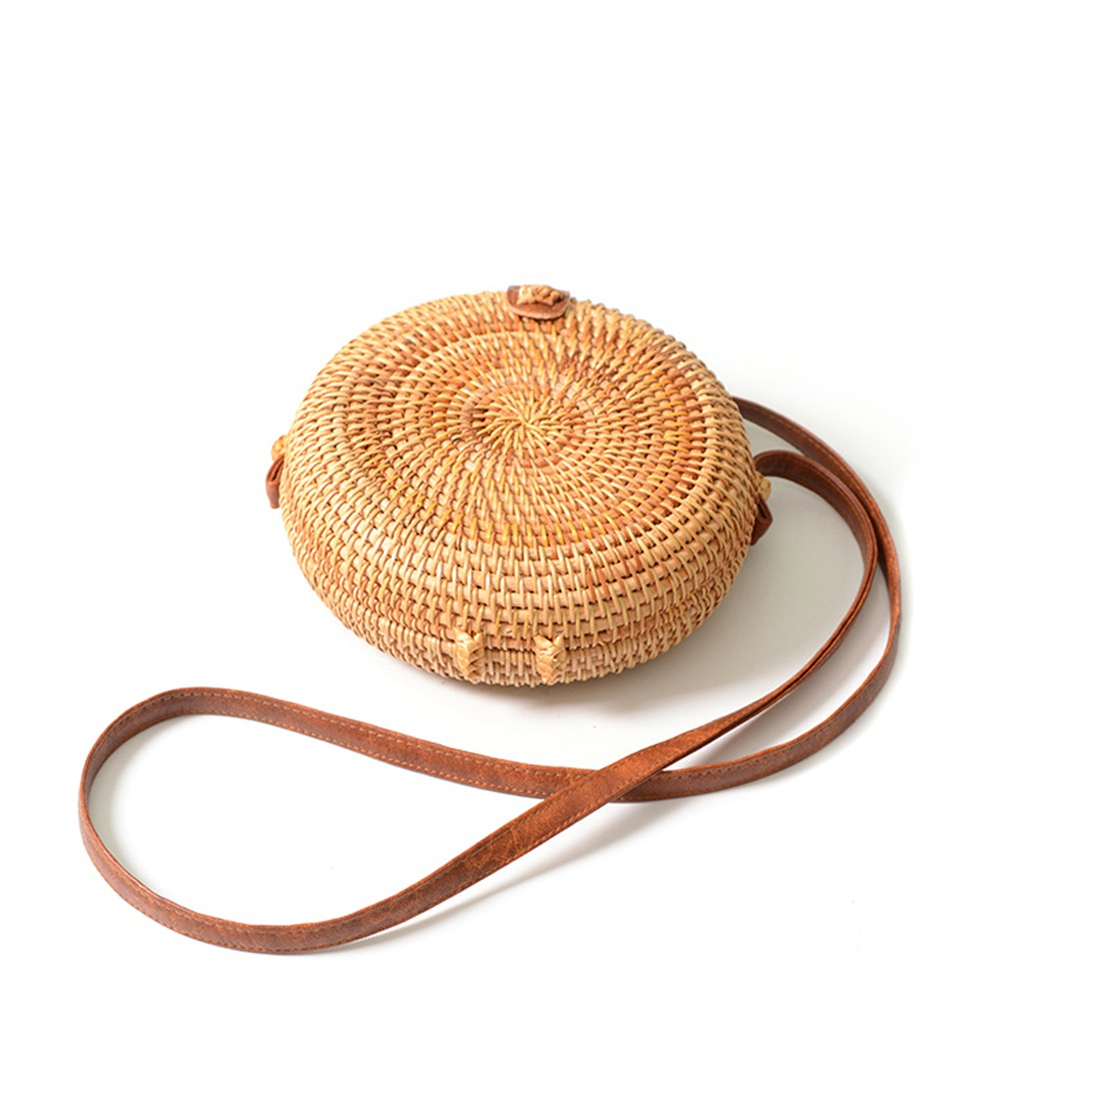 INS new ladies hand-woven bag round rattan retro literary hand-woven leather buckle package Bohemia Beach Messenger bagINS new ladies hand-woven bag round rattan retro literary hand-woven leather buckle package Bohemia Beach Messenger bag